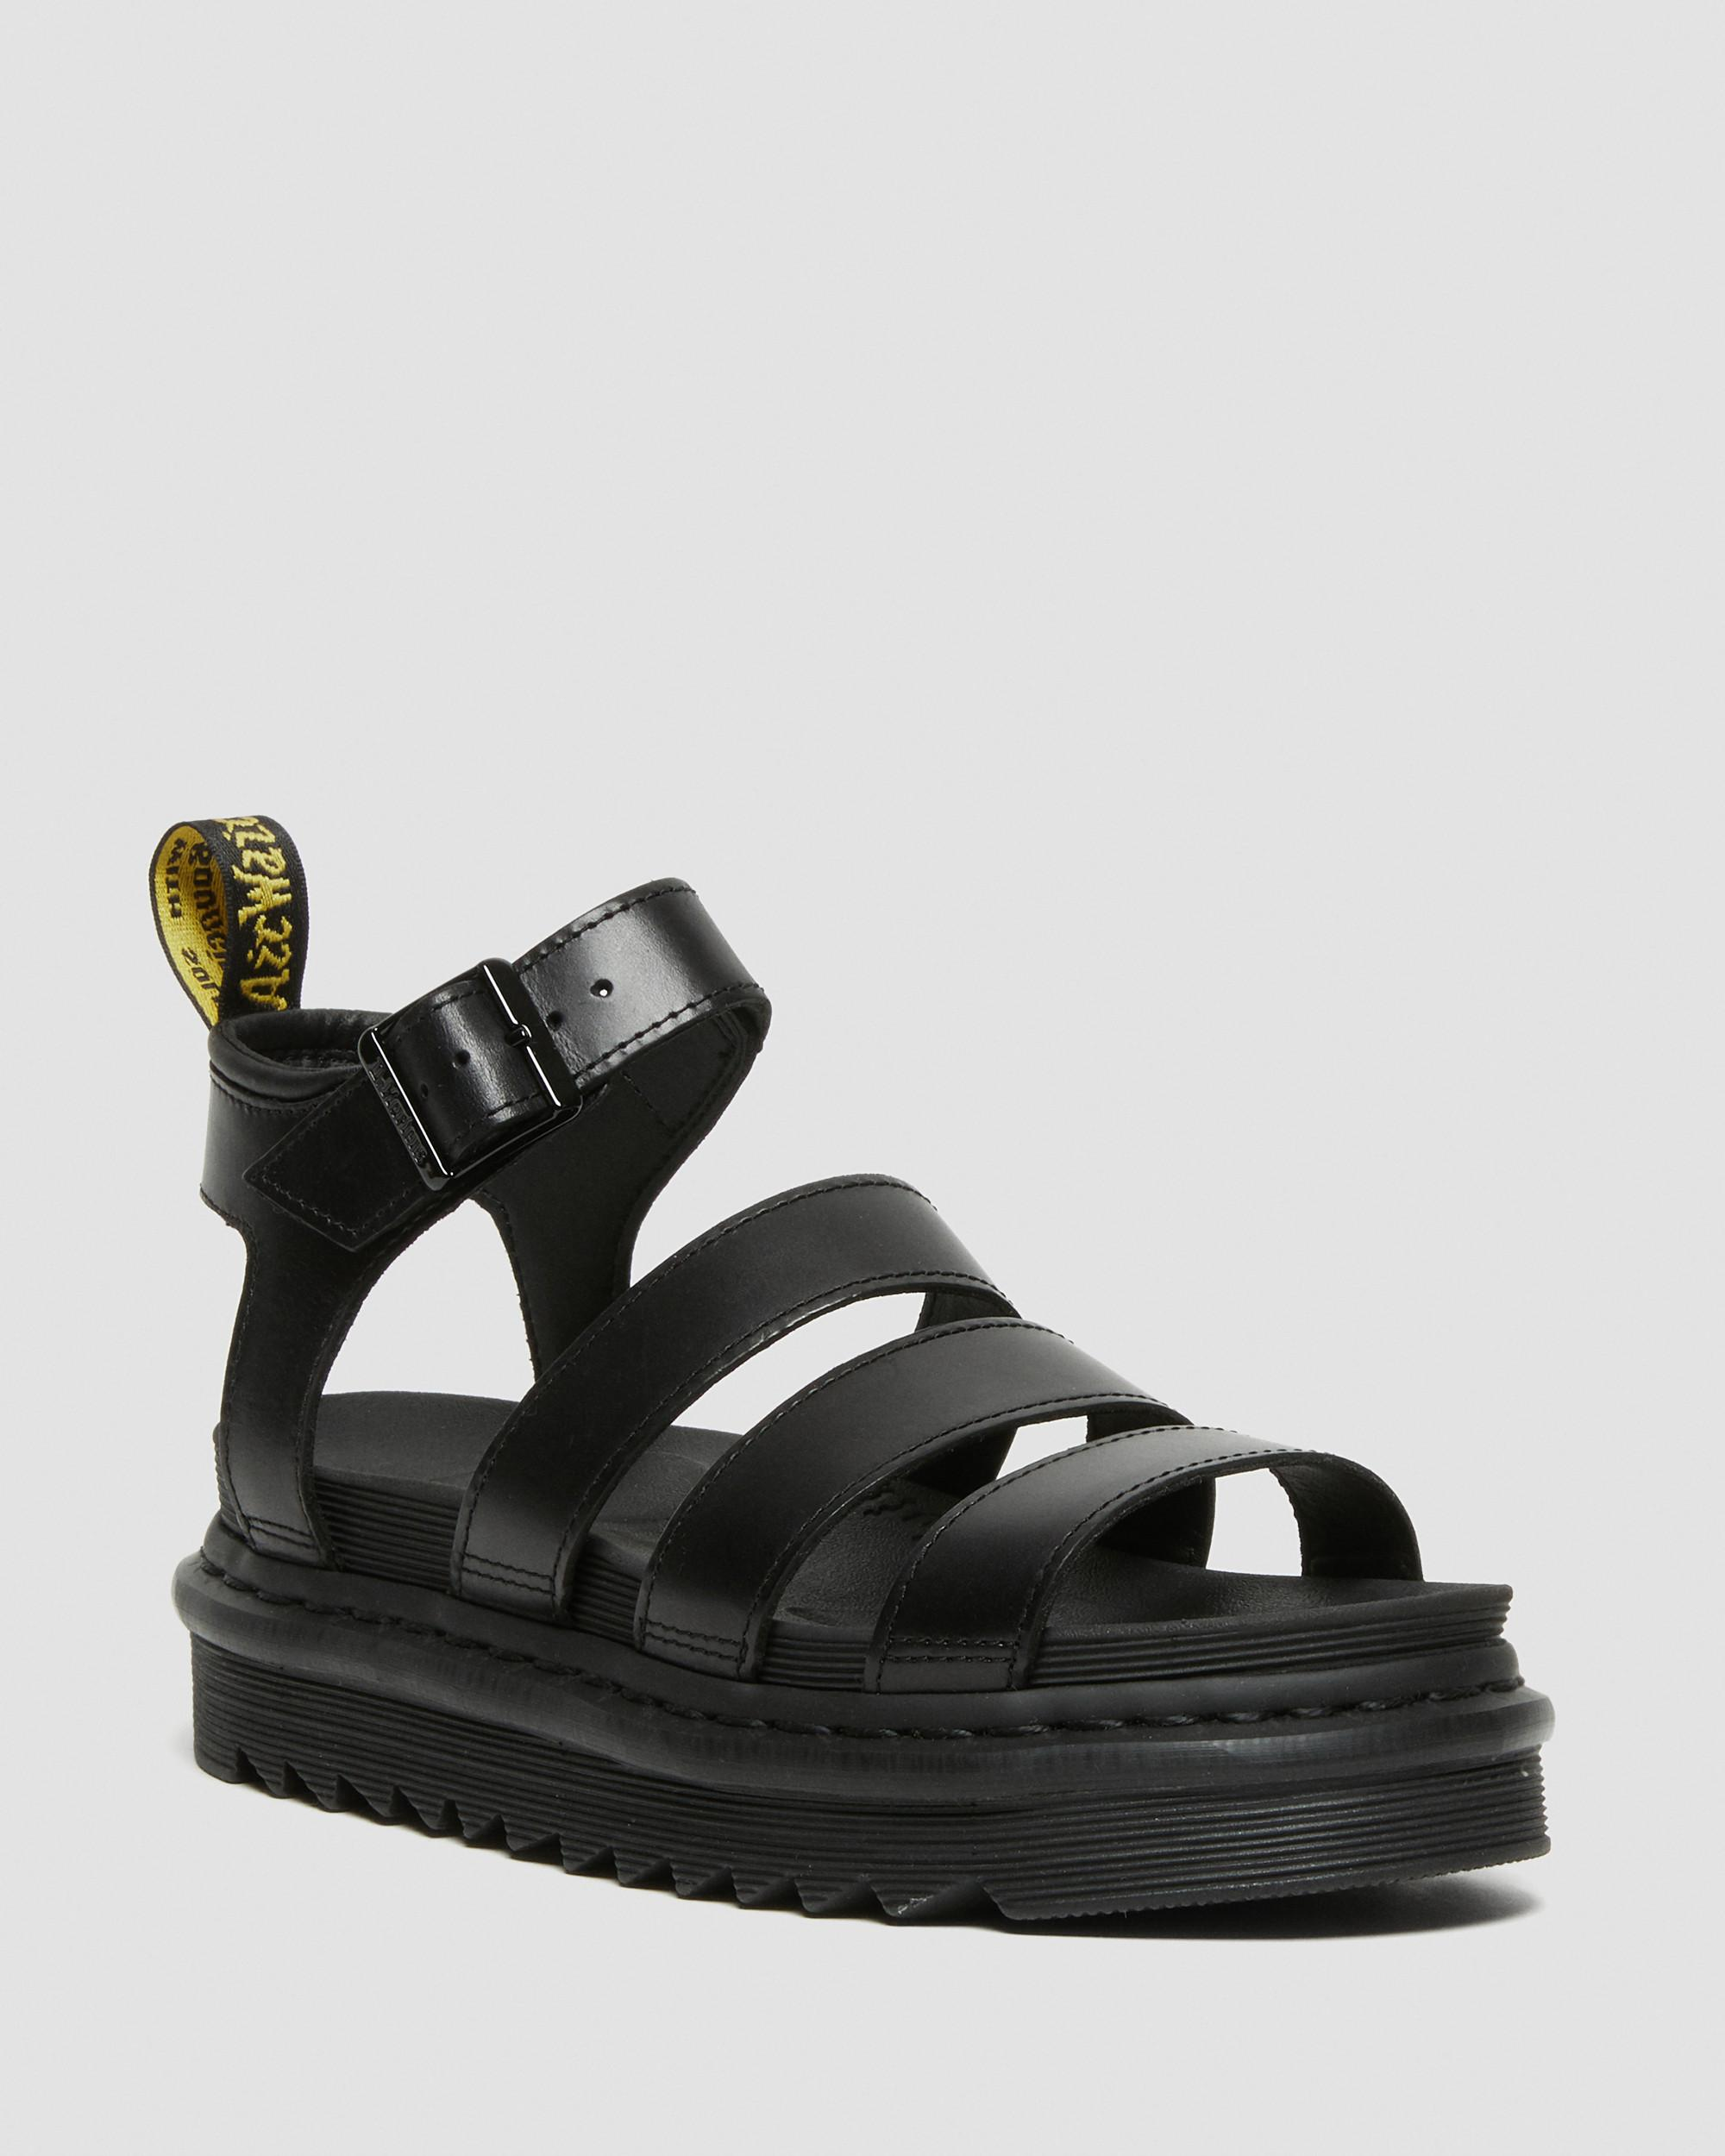 DR MARTENS BLAIRE WOMEN'S BRANDO LEATHER GLADIATOR SANDALS